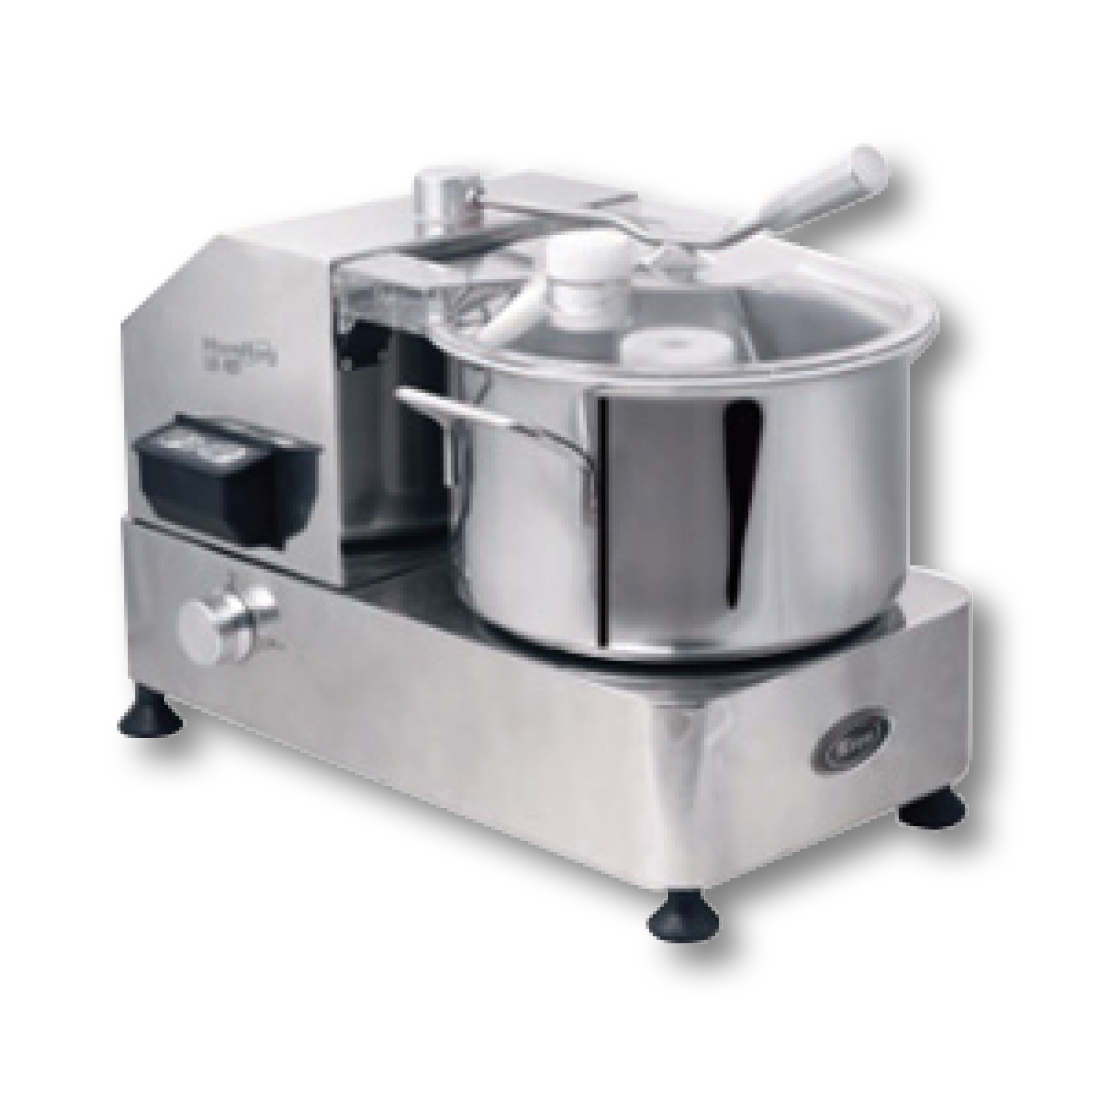 HR-6 Compact Food Process 6L